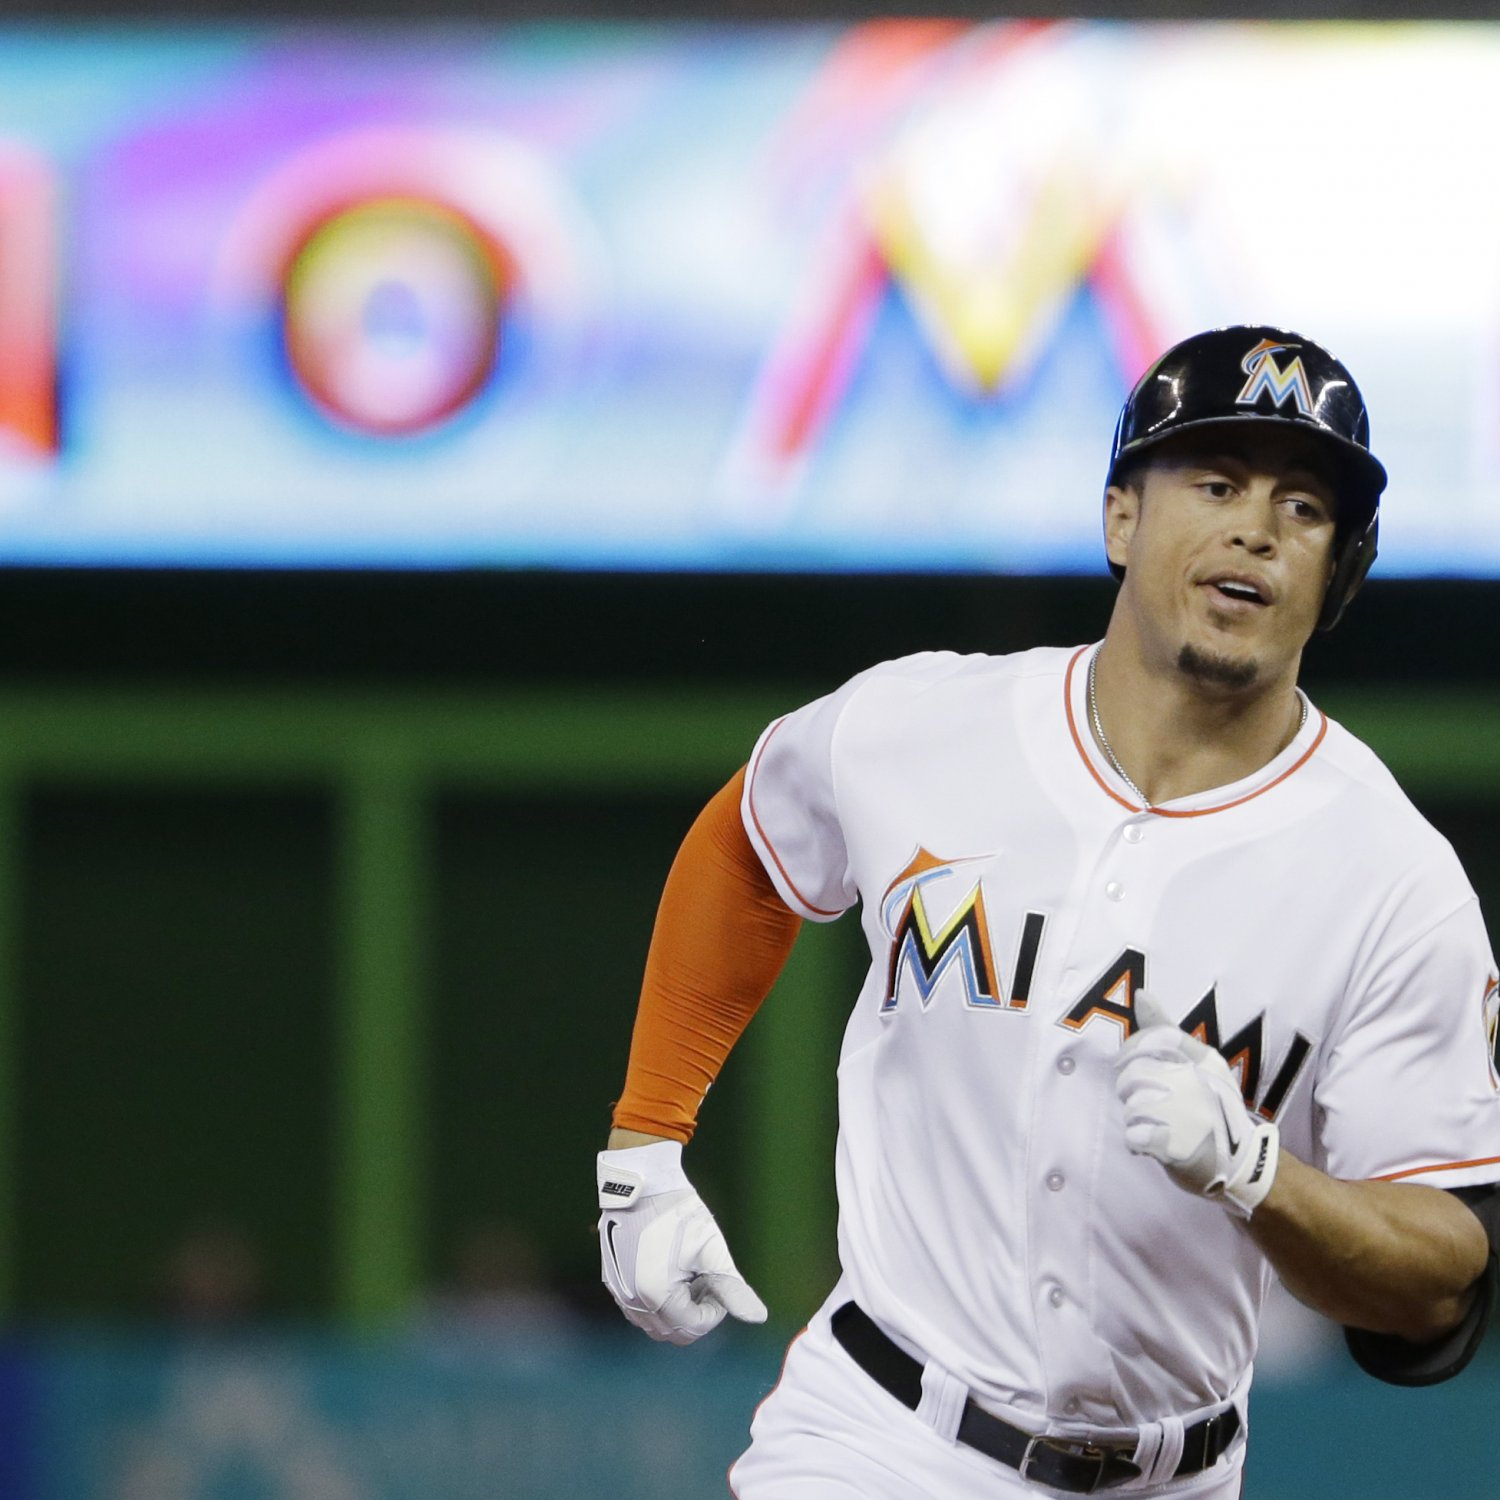 Giancarlo Stanton Of Miami Marlins Says He S Recovering: Giancarlo Stanton Taking Big Bucks, Bigger Risk With